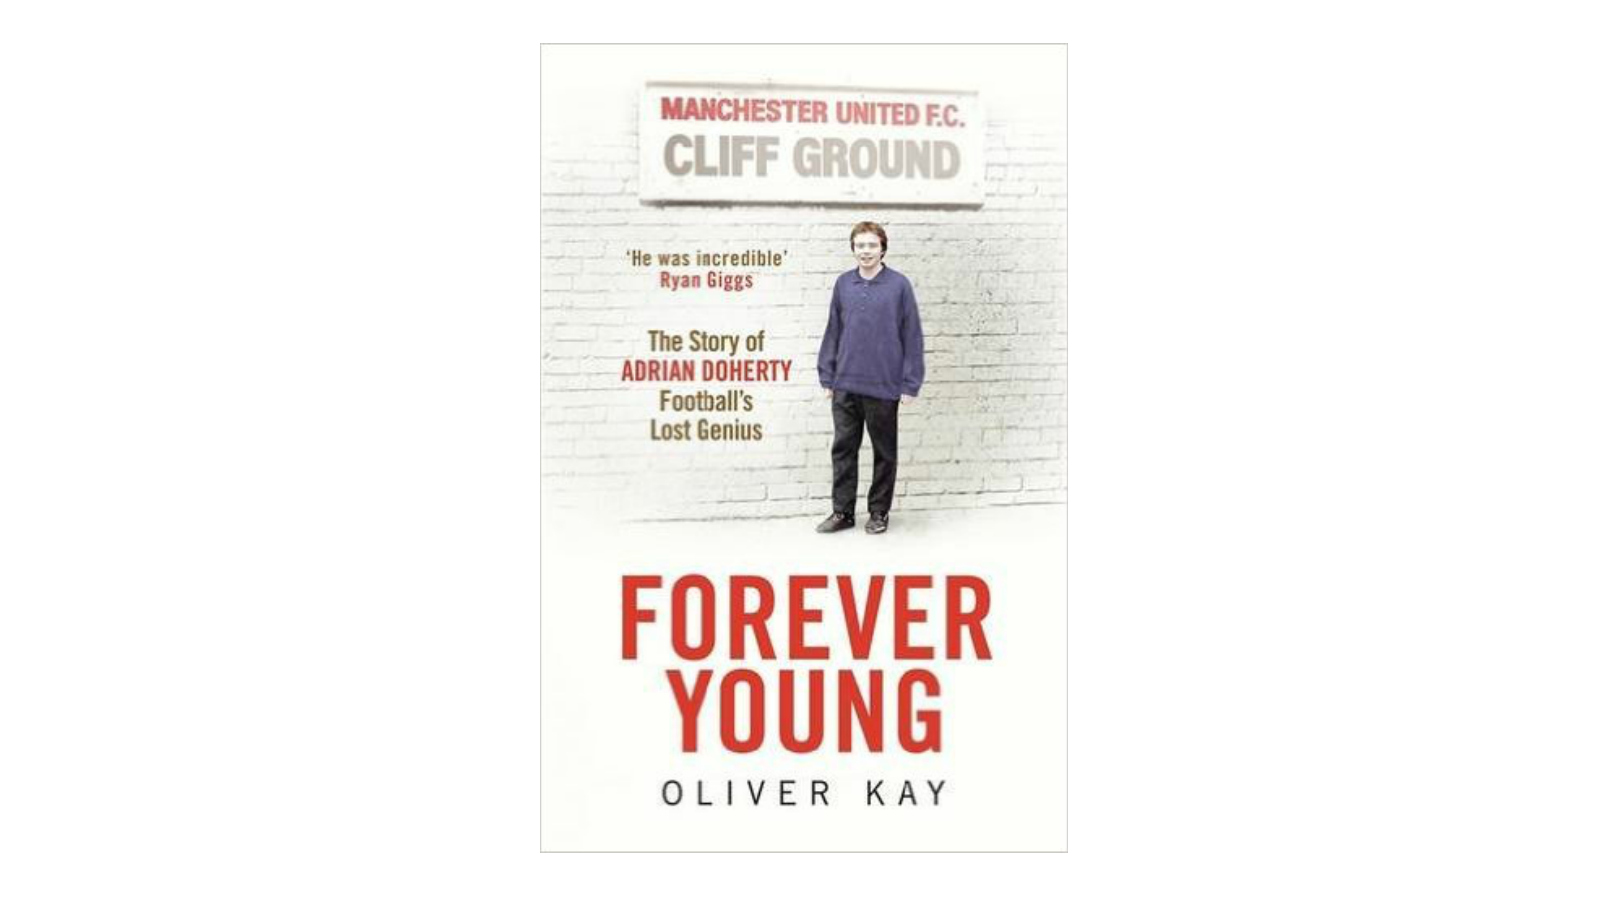 Best Soccer Gifts: Forever Young: The Story of Adrian Doherty, Football's Lost Genius by Oliver Kay (Cover)